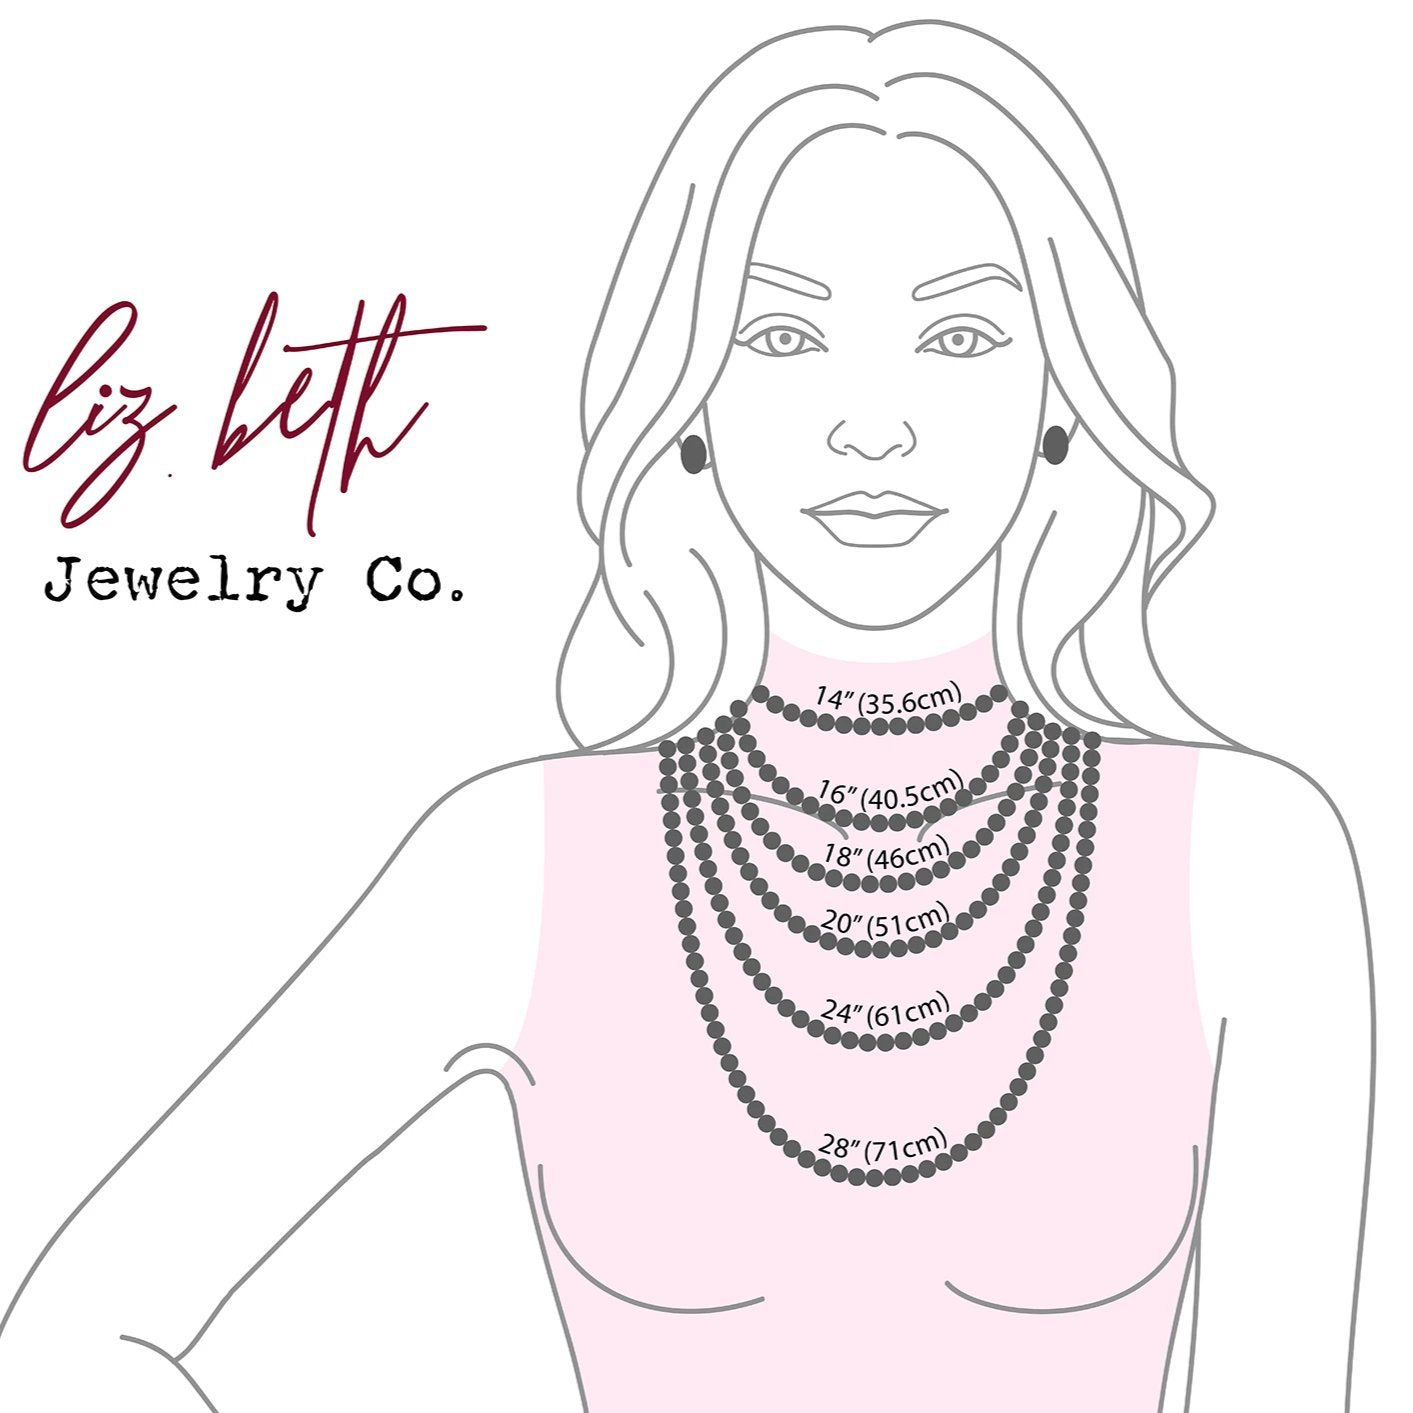 Necklace Measurement Chart, Necklace Length Sizing | Liz.Beth Jewelry Co.